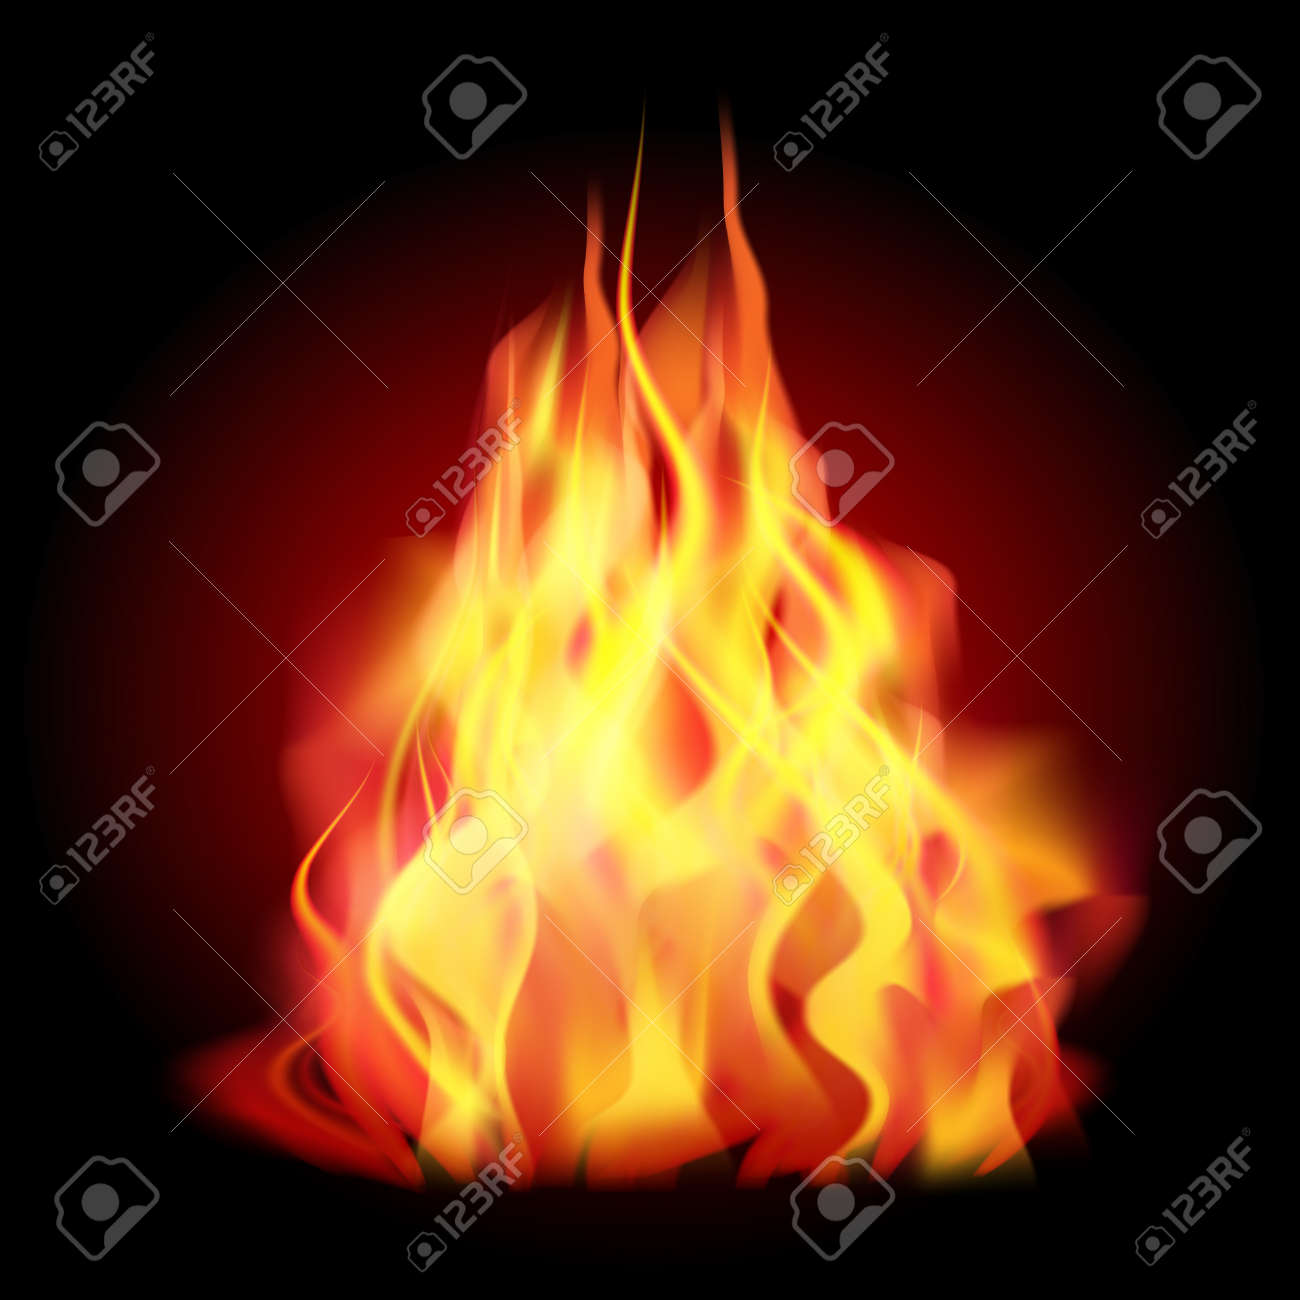 Flames Of Fire As The Background Vector Illustration Royalty Free Cliparts Vectors And Stock Illustration Image 44229165